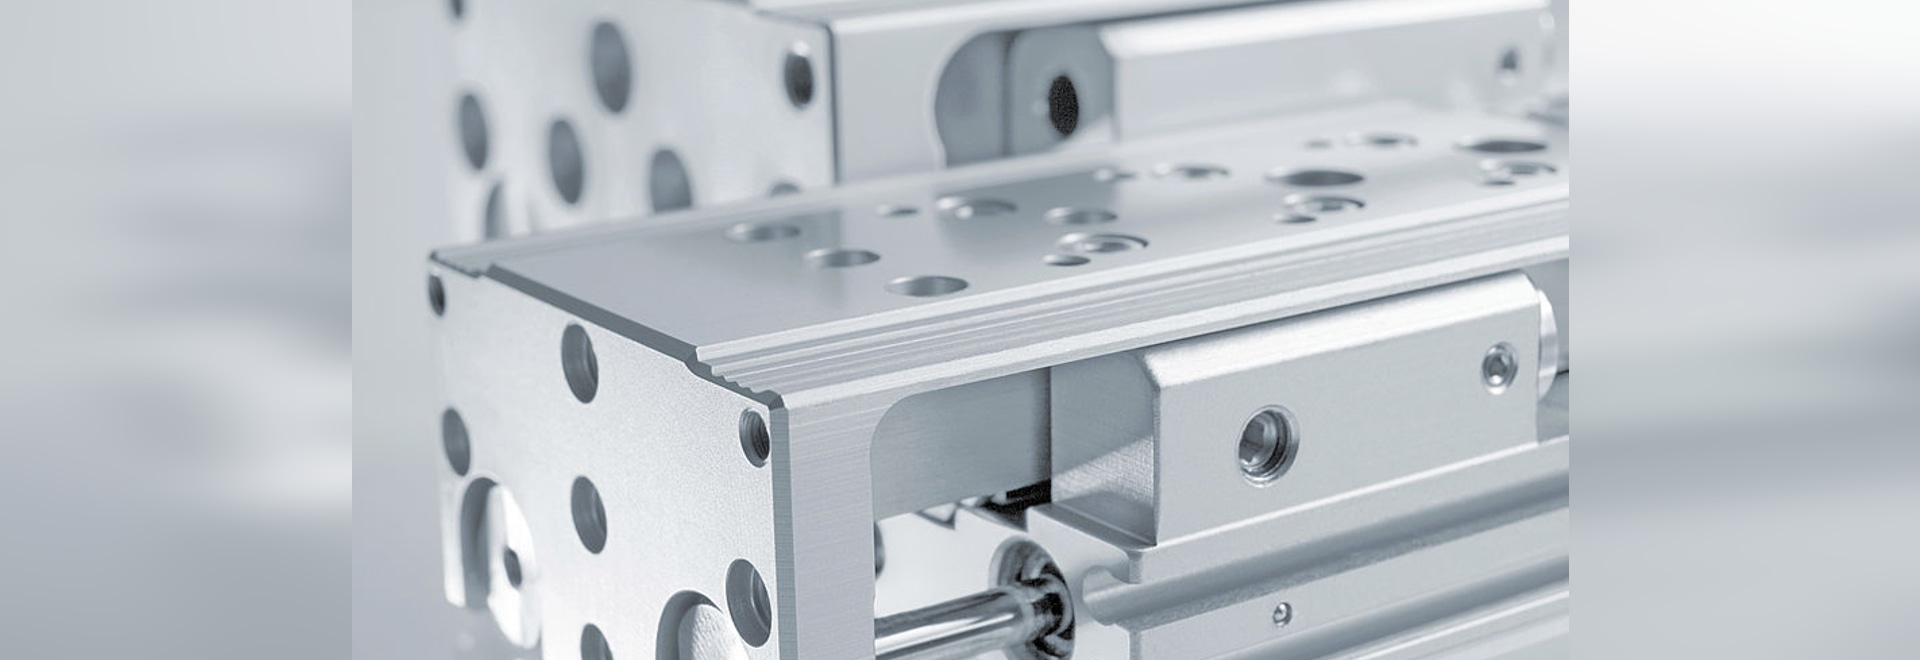 The new generation of MSC mini slides from Rexroth Pneumatics can be configured to perfectly fit your requirements.